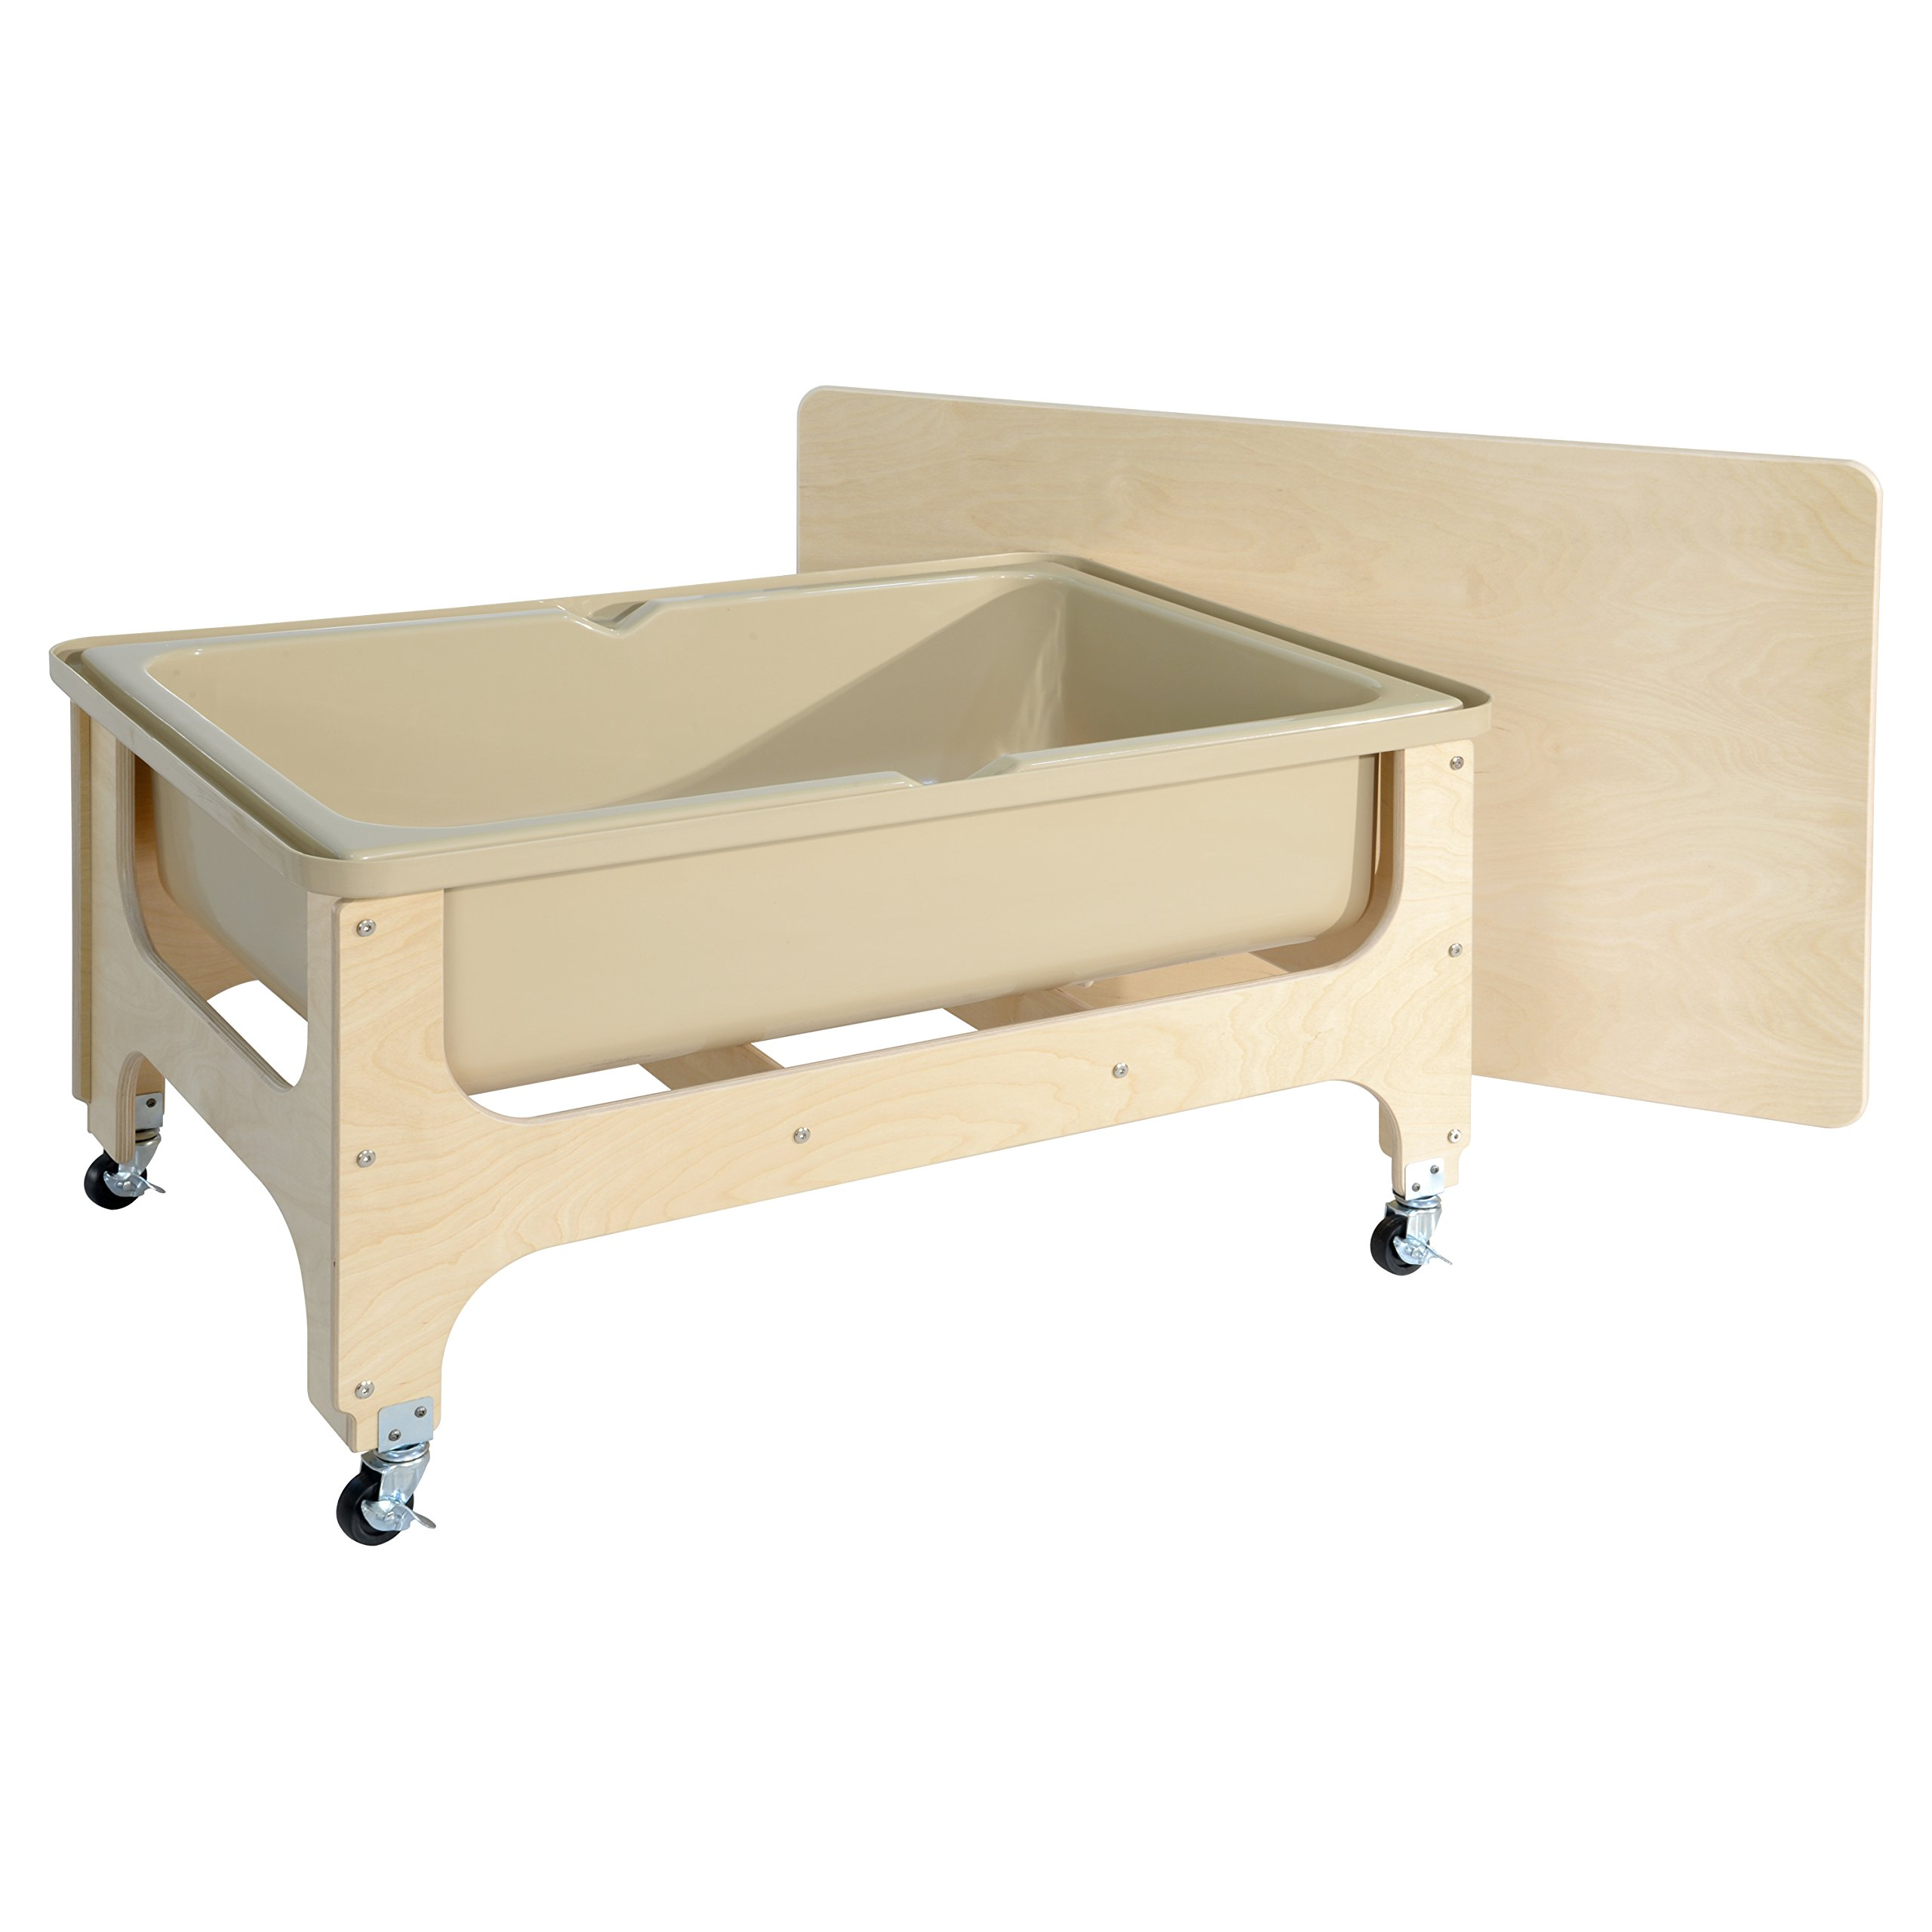 Wood Designs WD11875 - Tot Size Sand & Water Table with Lid by Wood Designs